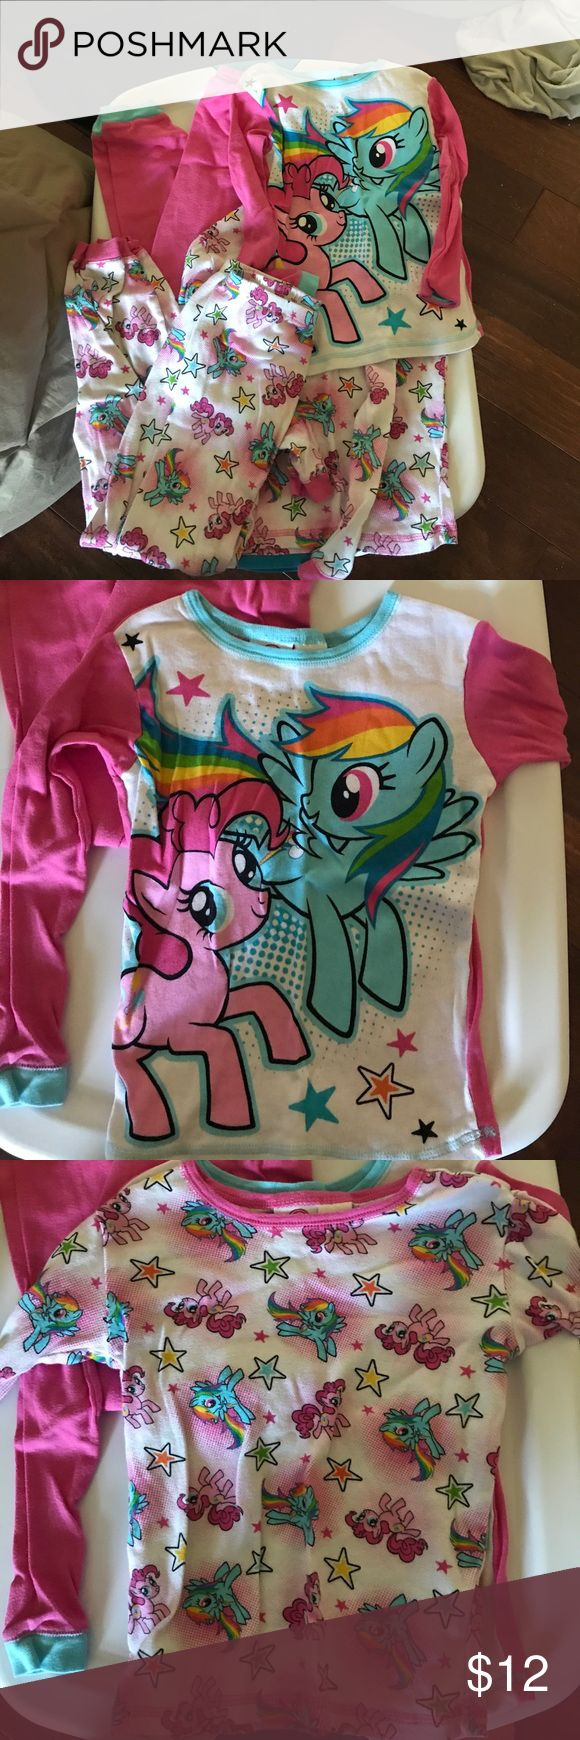 My little pony pjs Two pairs of long sleeved my little pony pjs. In good condition. Mix and match the top and bottom. Pajamas Pajama Sets